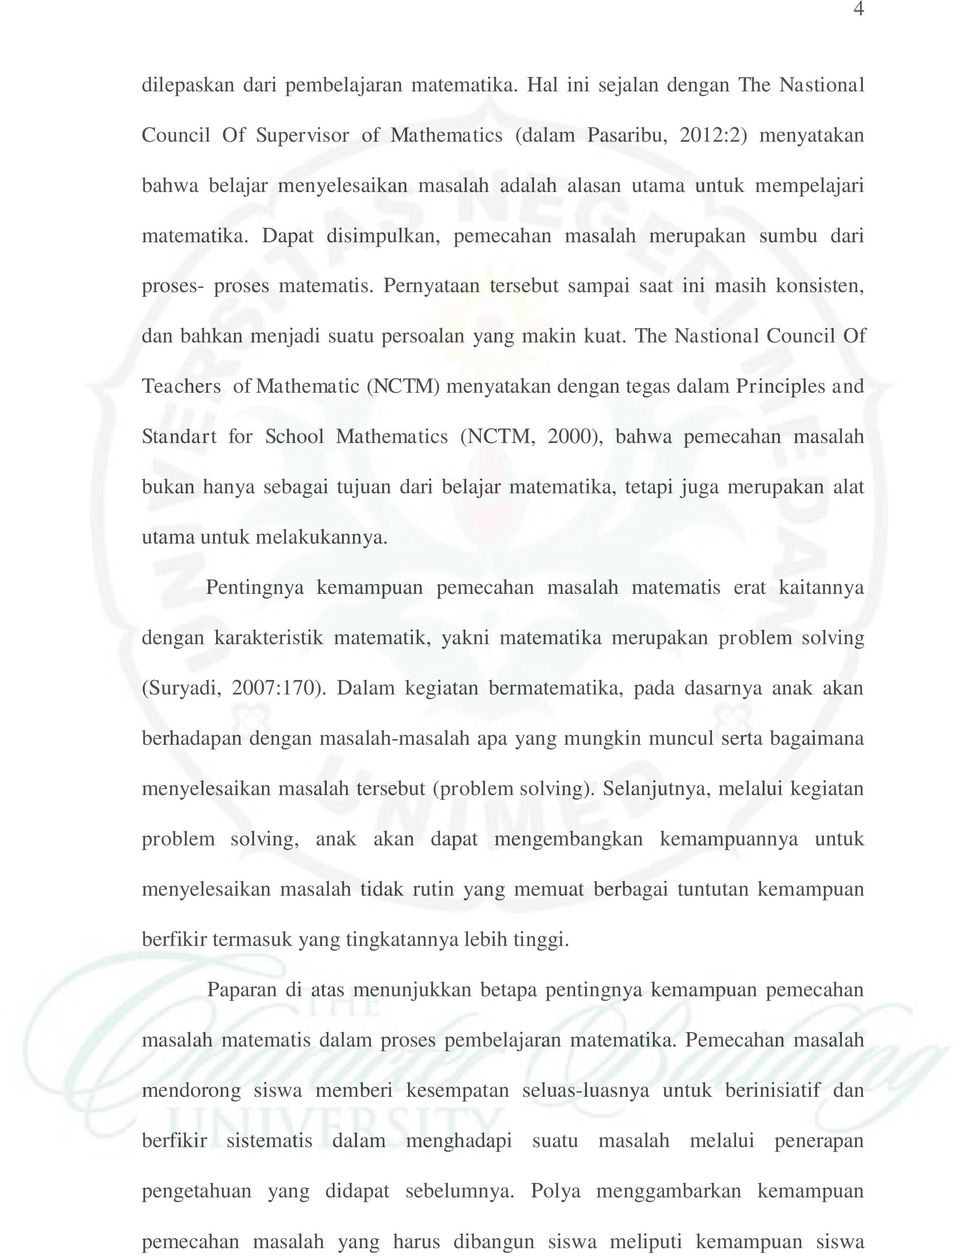 Sample of research paper mla photo 1